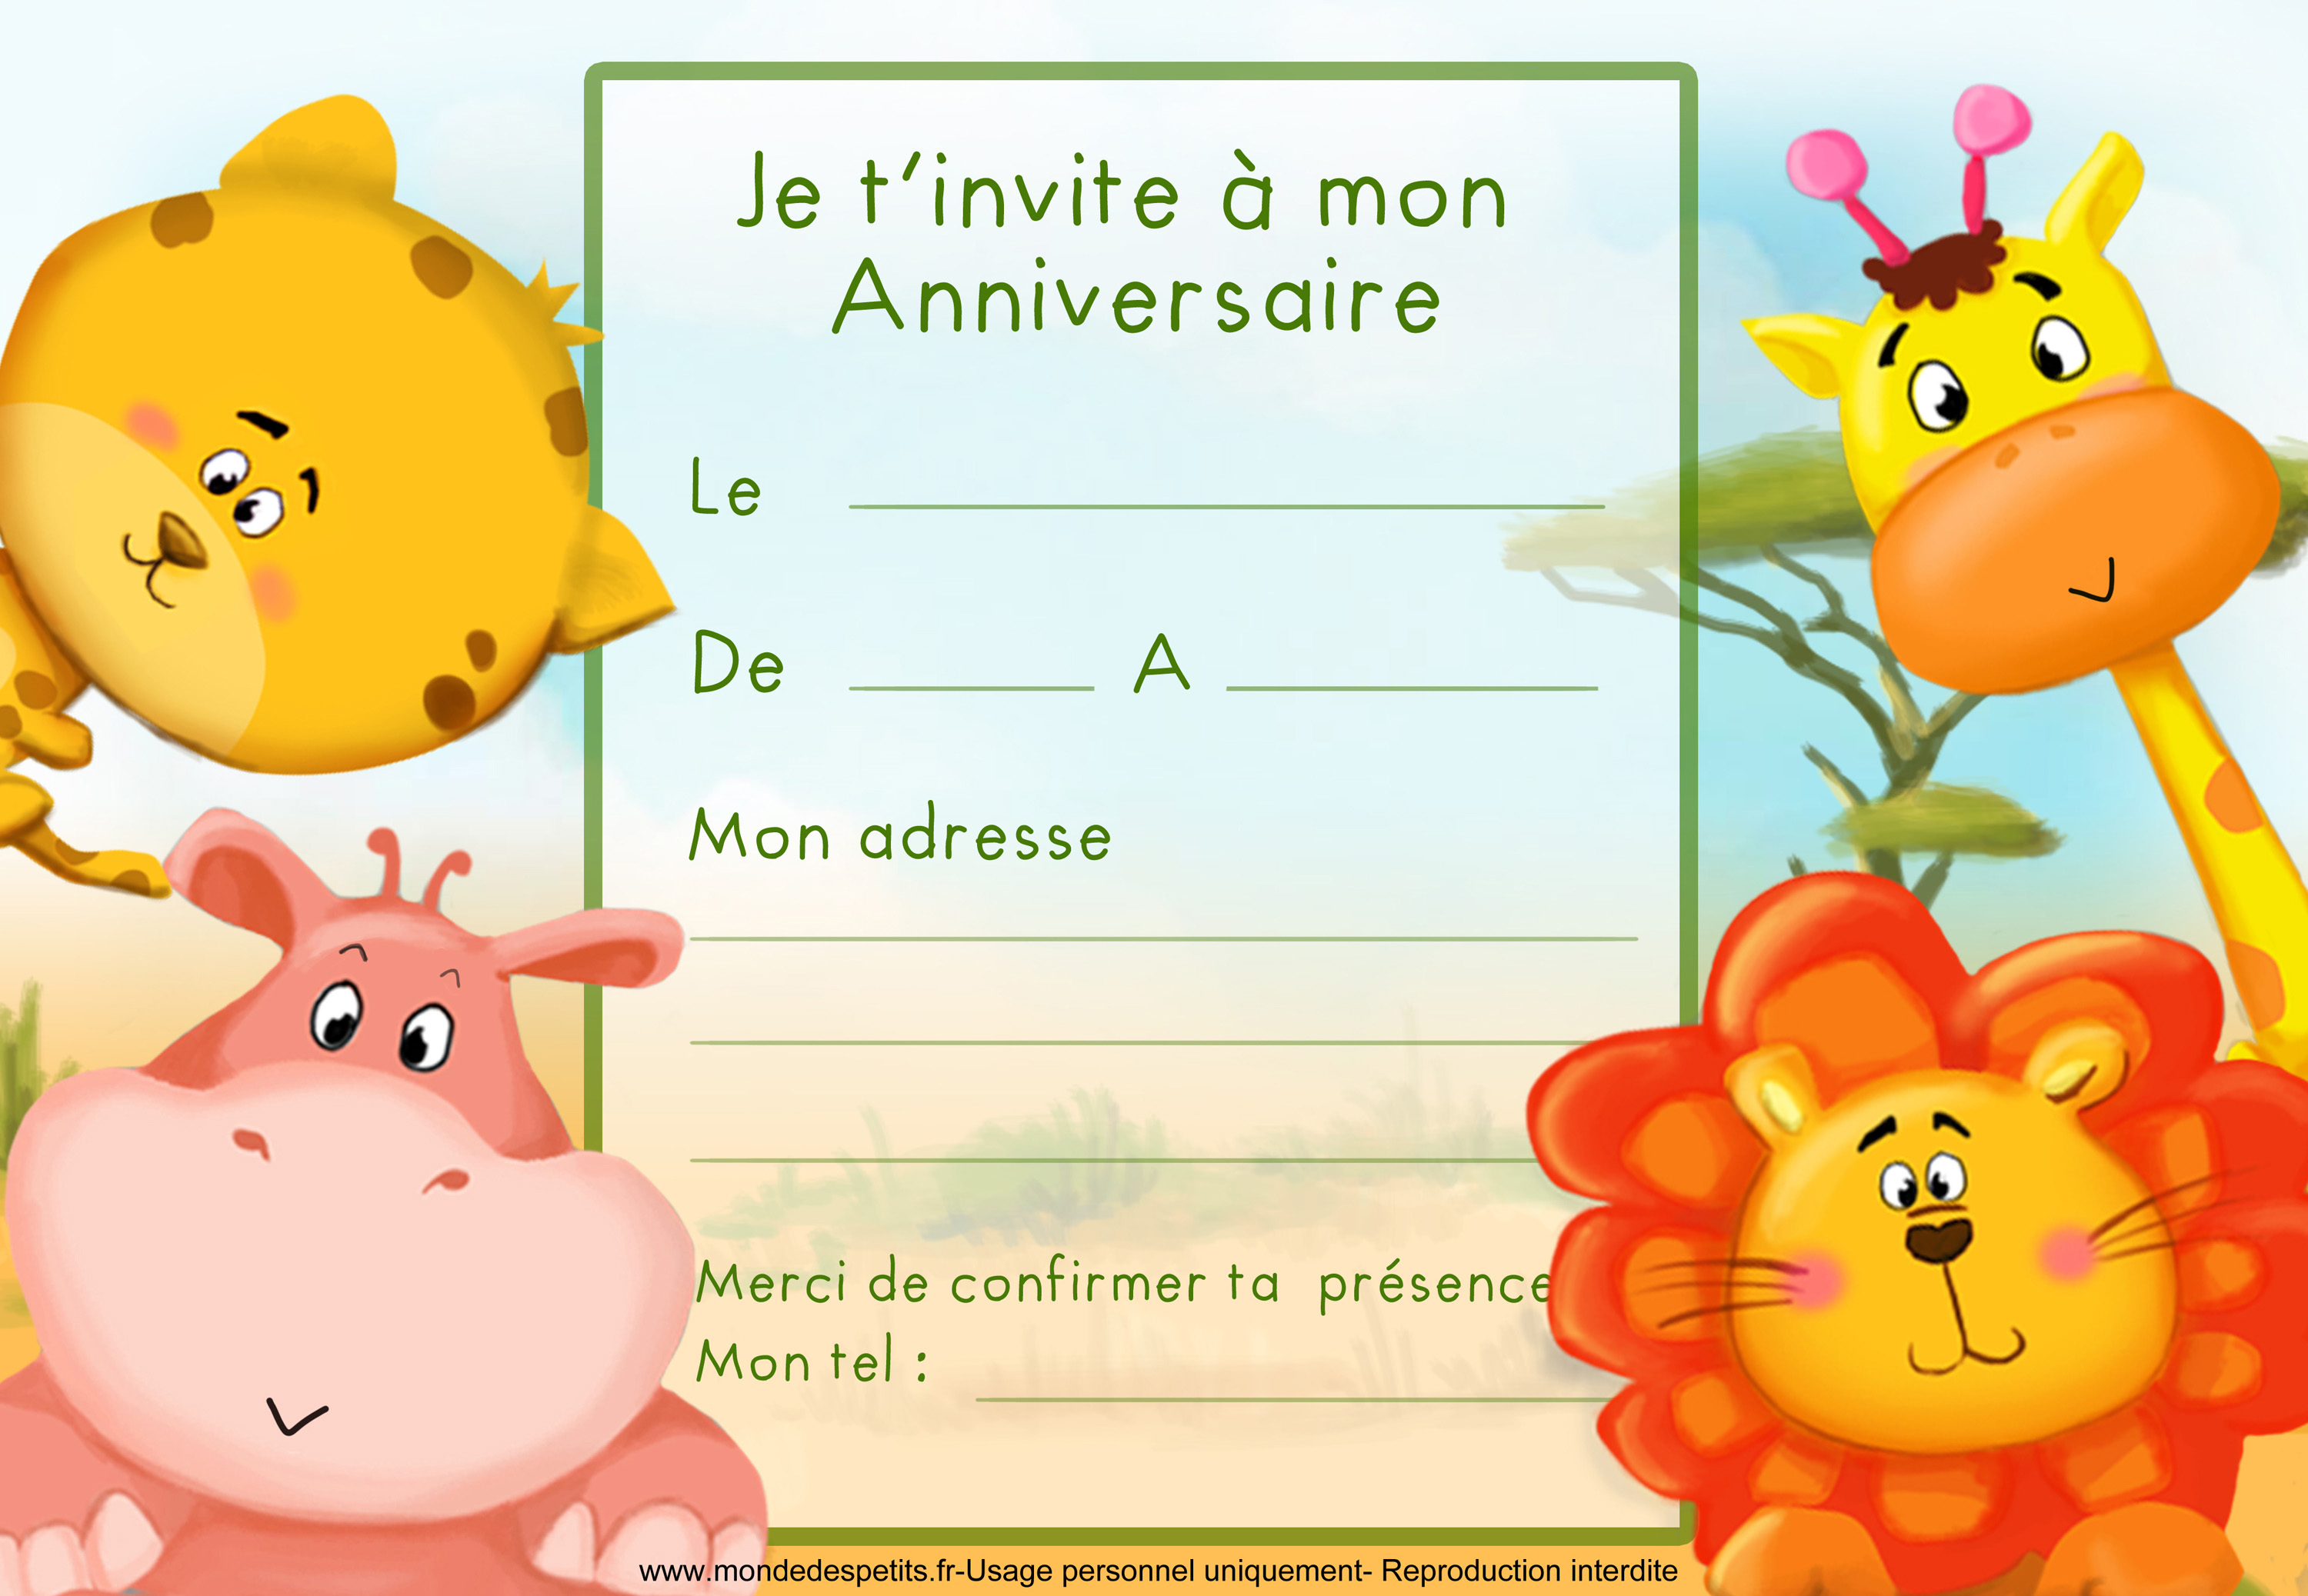 1000+ images about carte d'invitation on Pinterest | Invitations, Cup cakes and Papillons